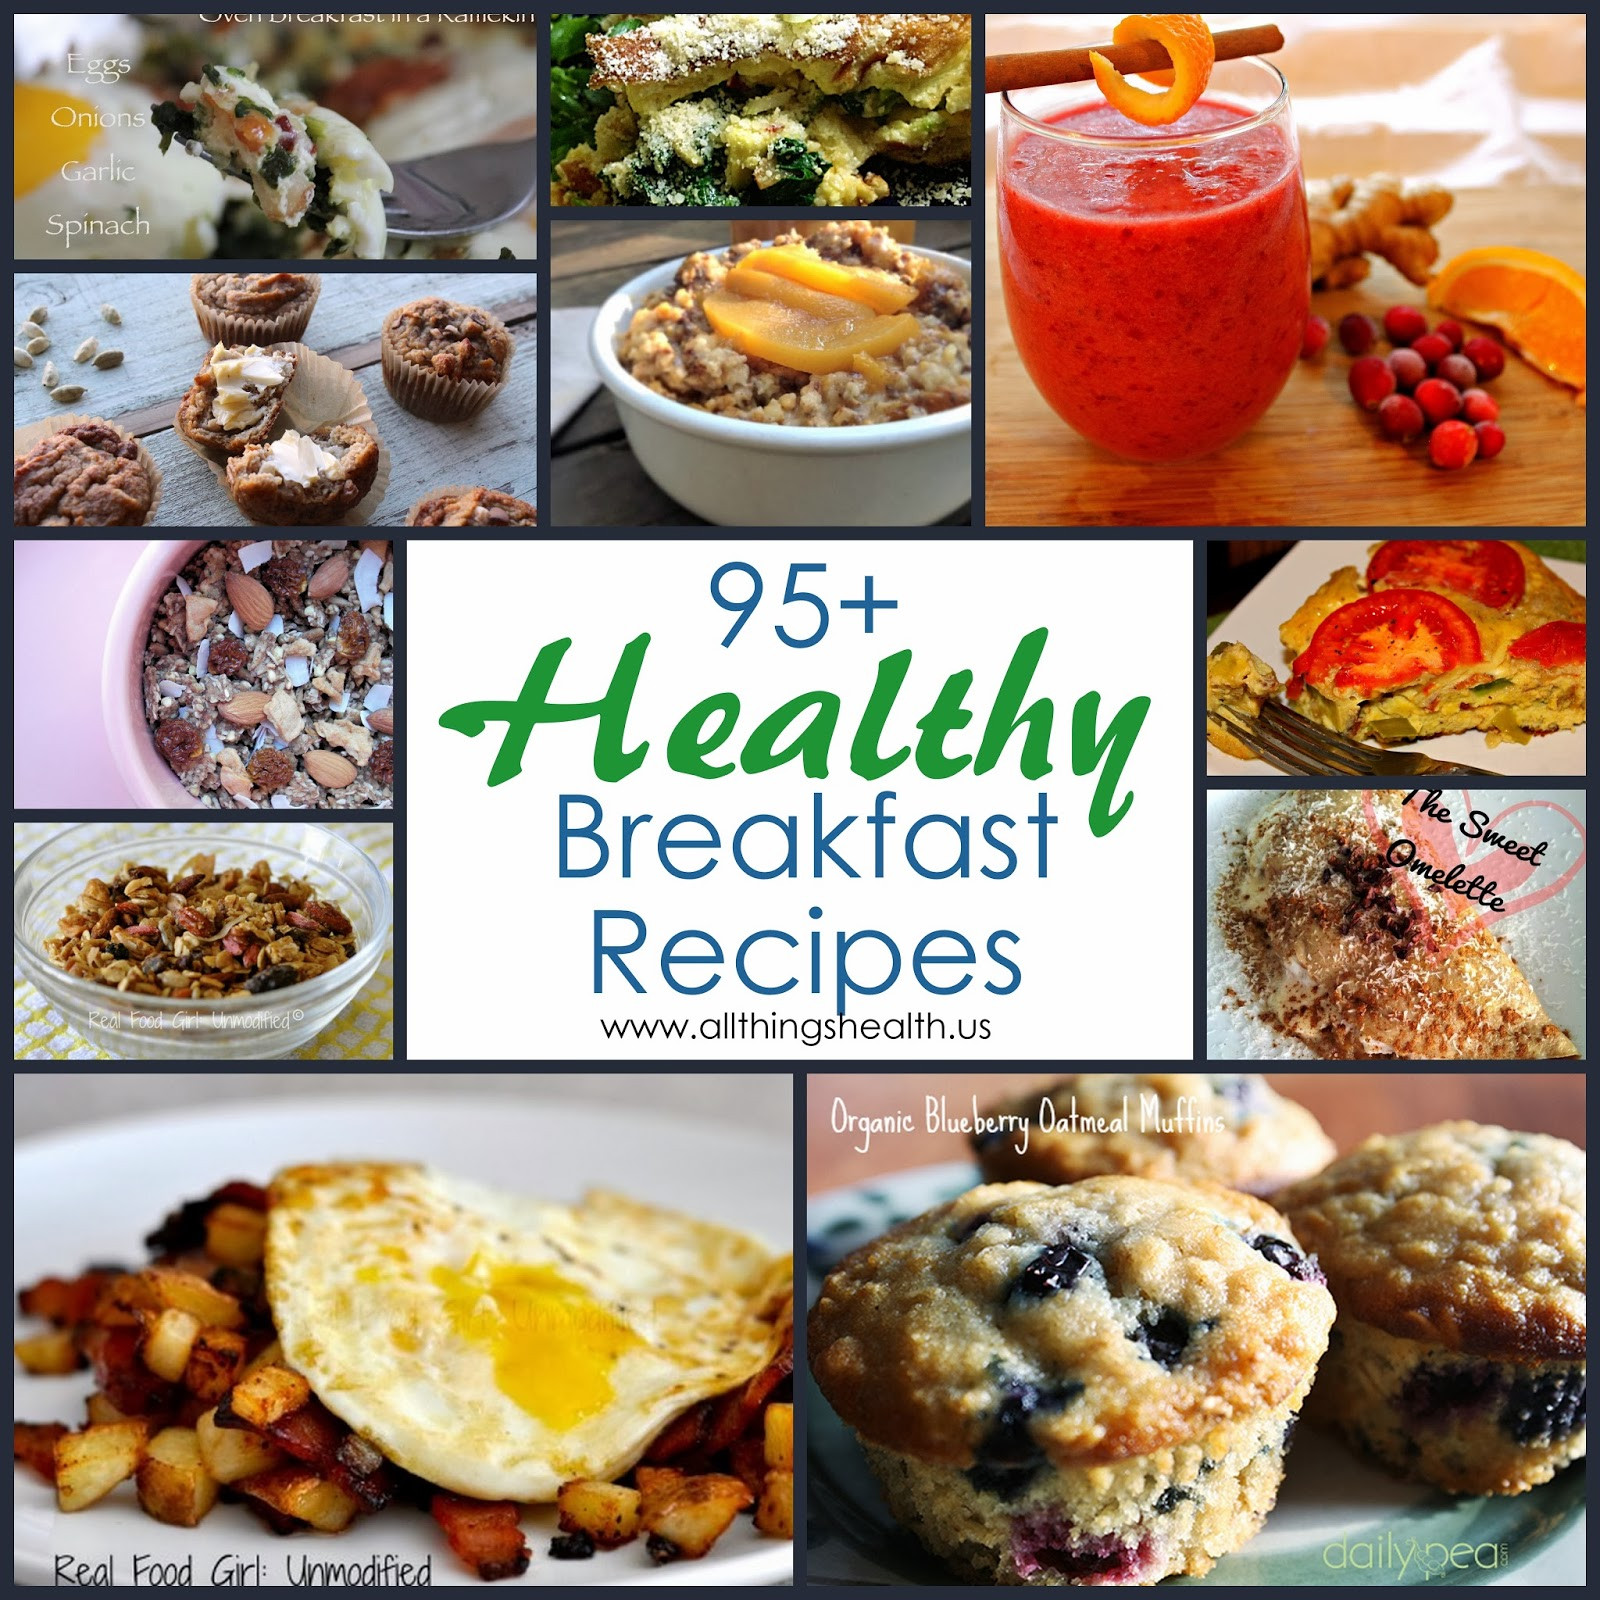 Healthy Breakfast Dishes  All Things Health 95 Healthy Breakfast Recipes